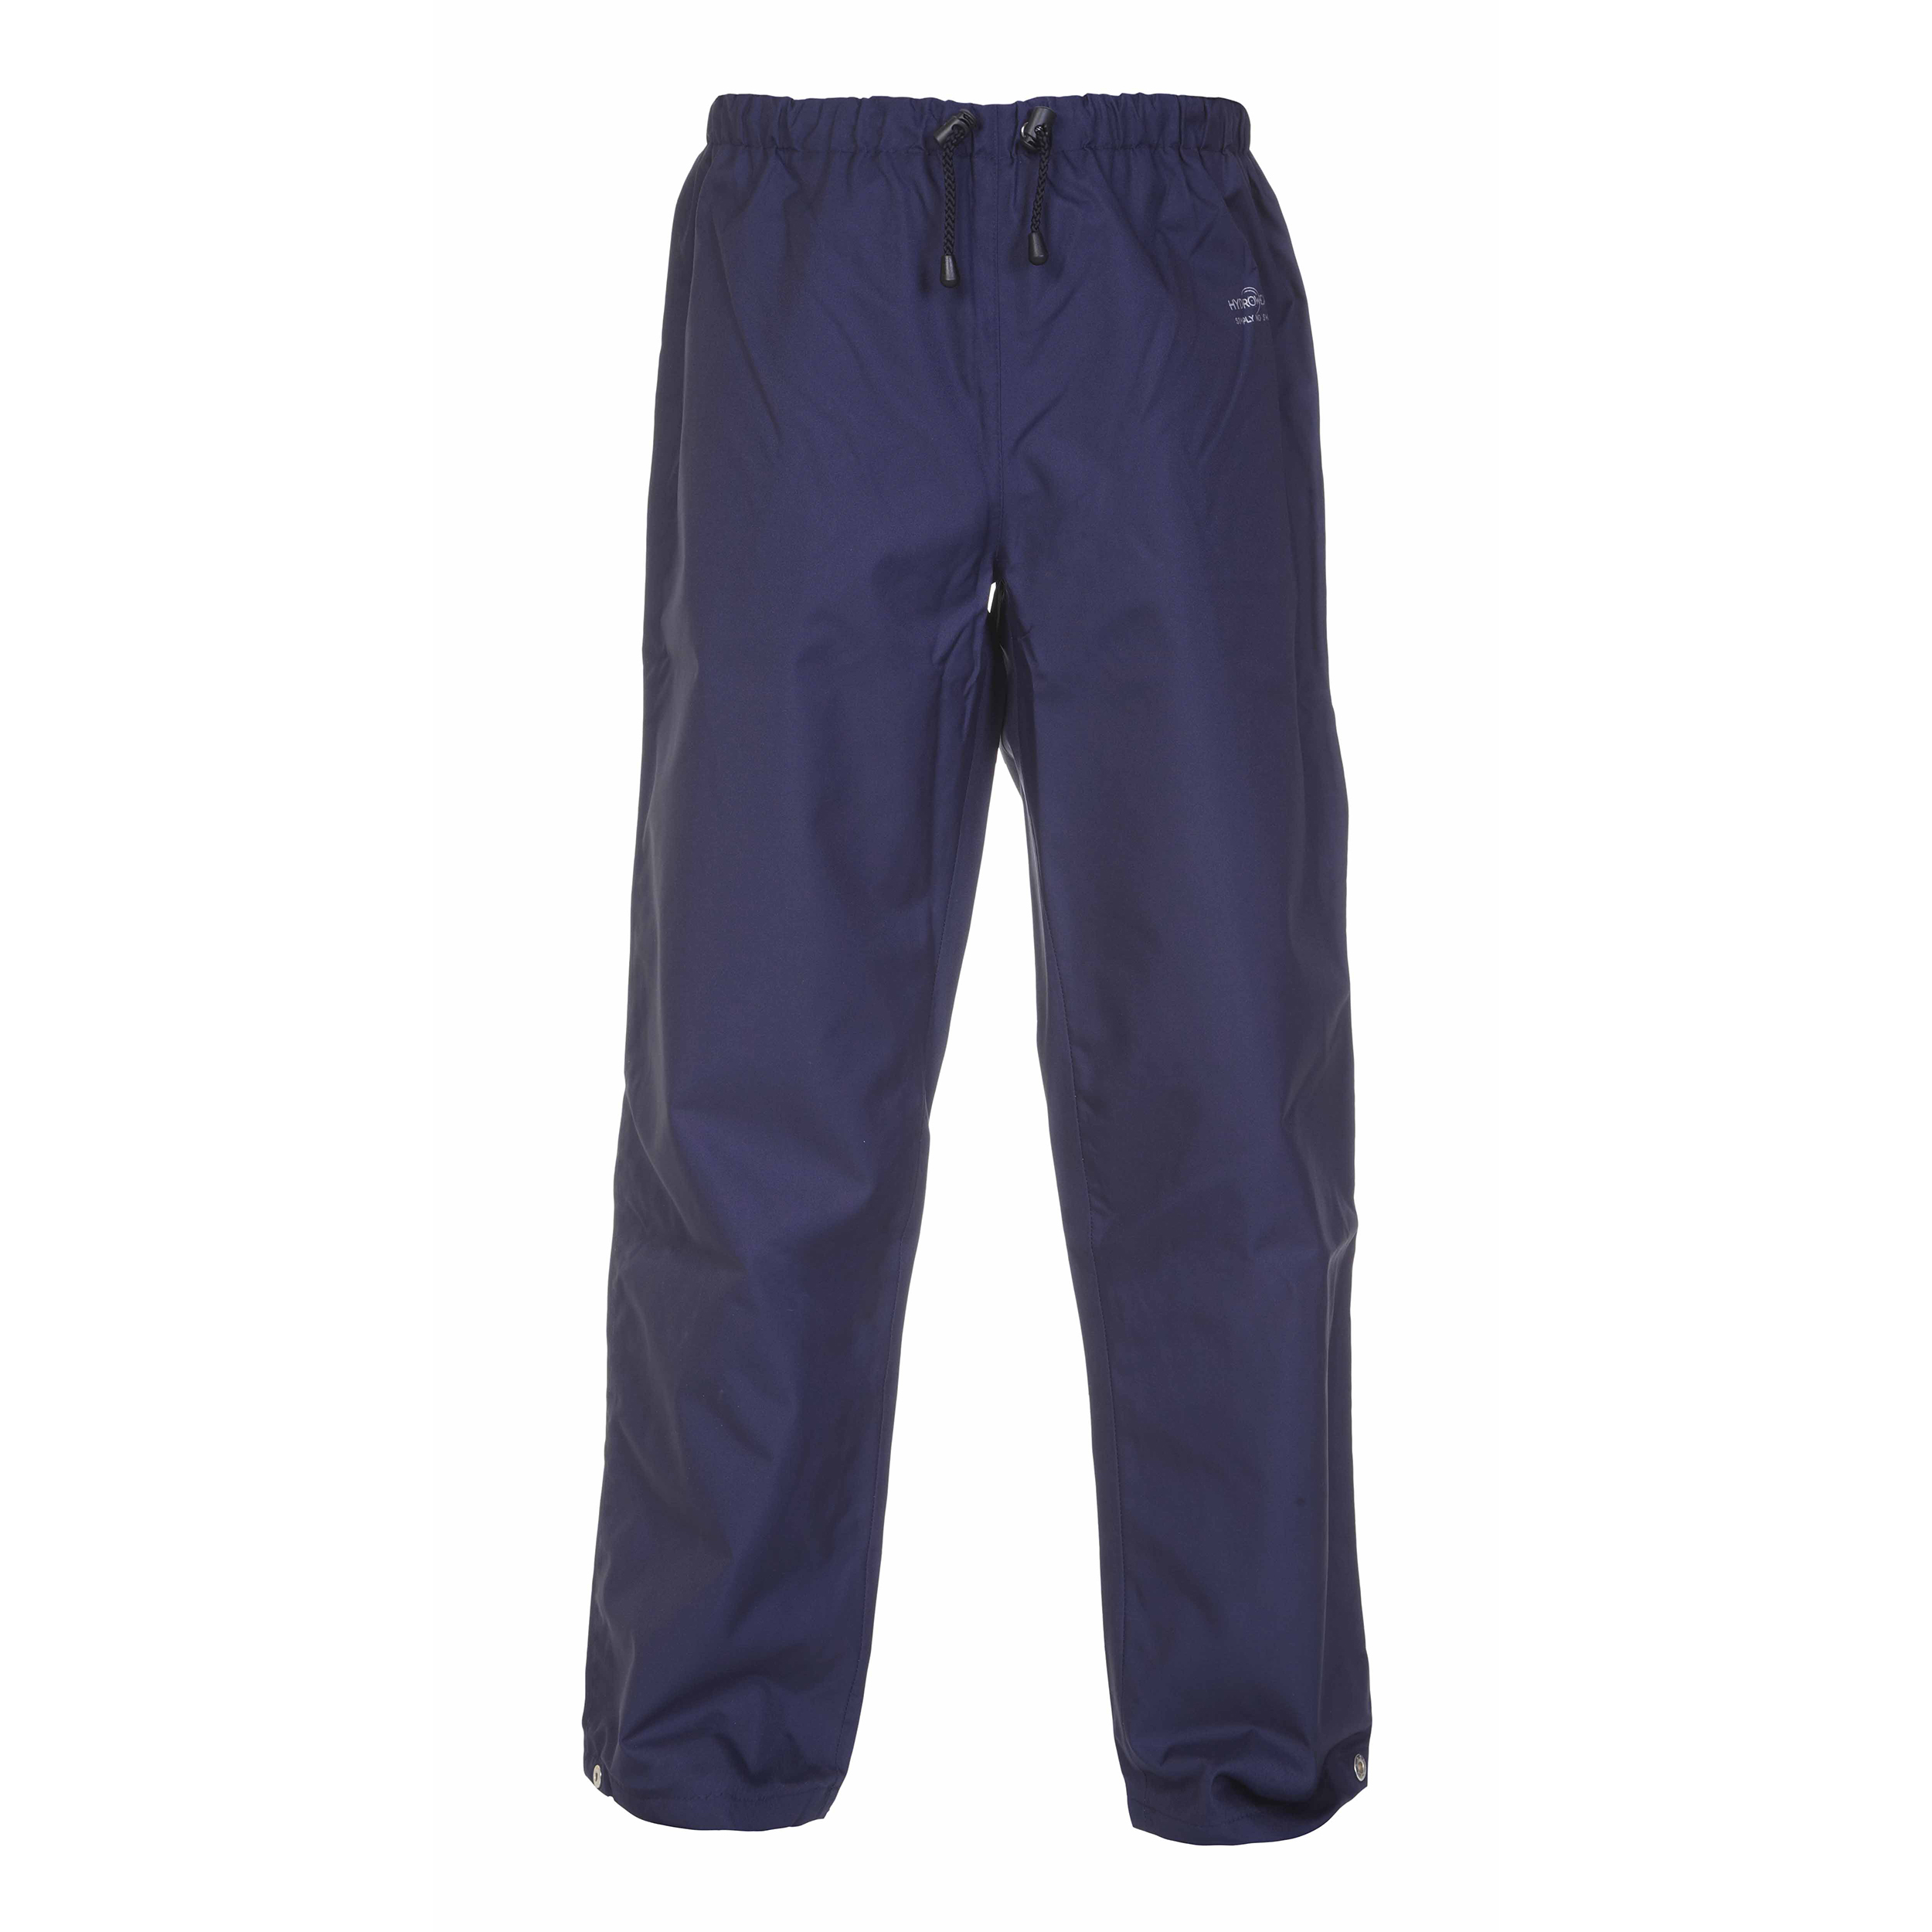 Hydowear Utrecht SNS Waterproof Trousers Meduim Navy Ref HYD072350NM *Up to 3 Day Leadtime*